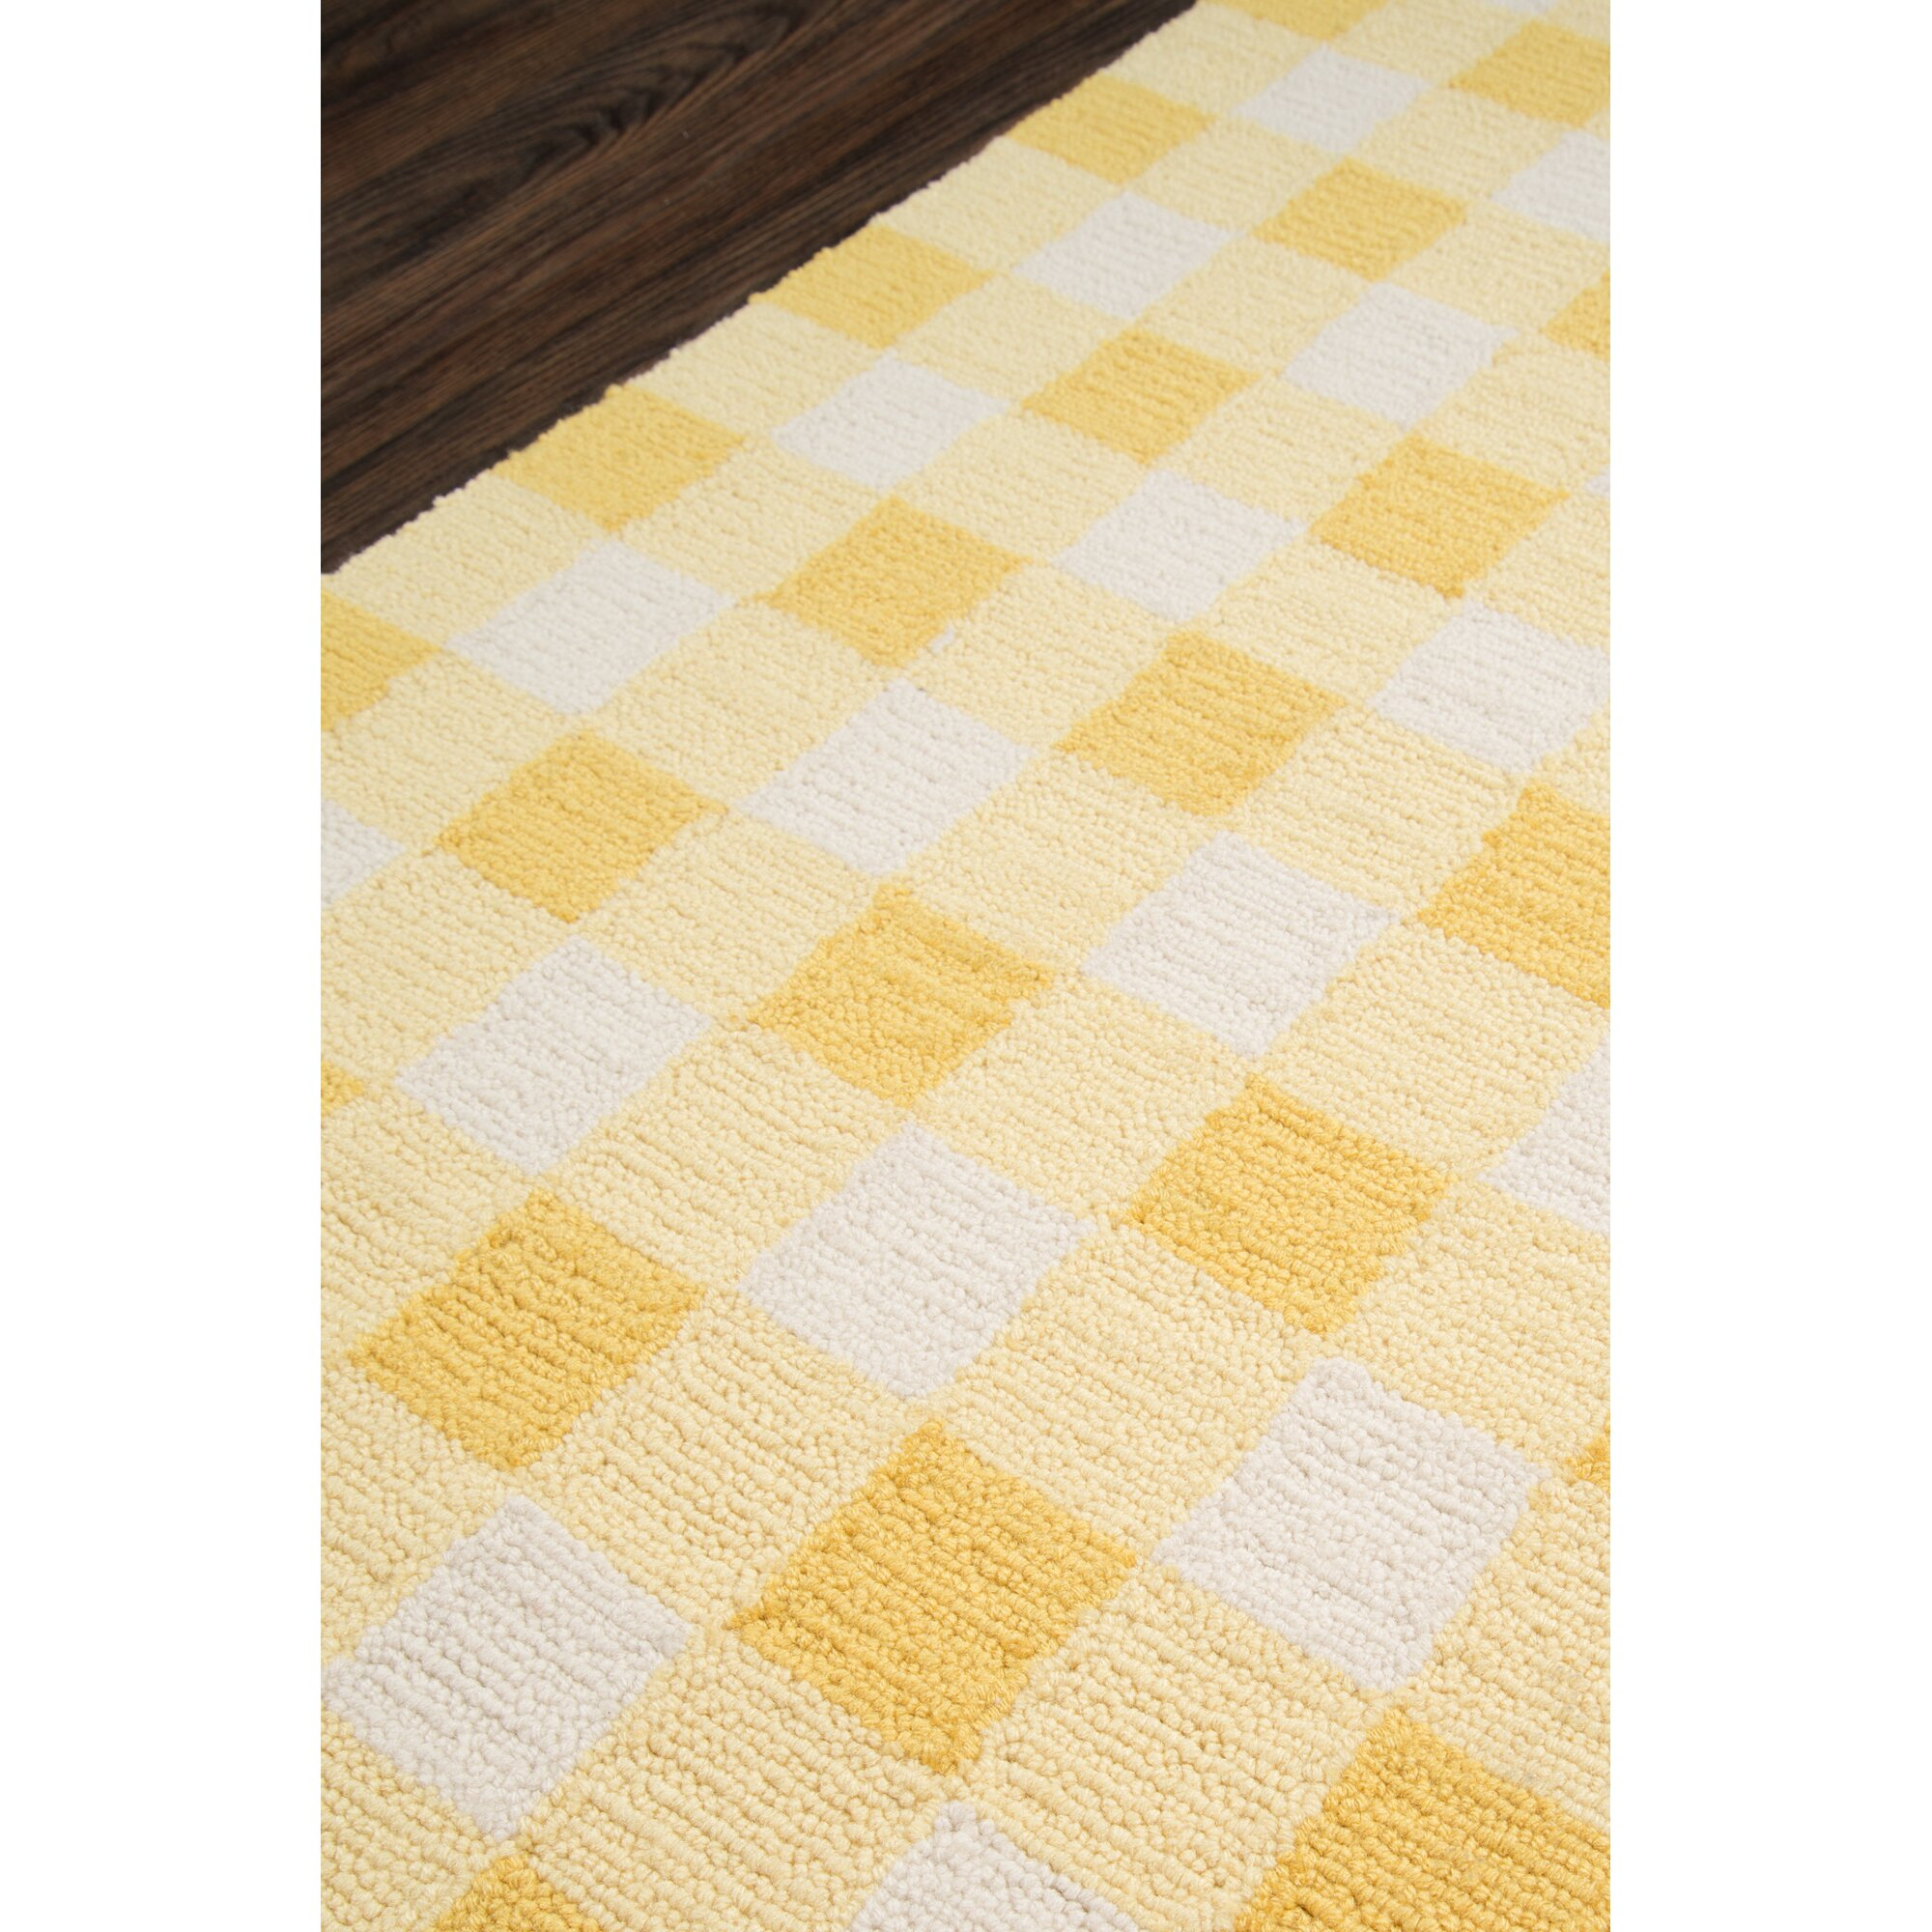 august grove violet hand woven yellow white area rug reviews. Black Bedroom Furniture Sets. Home Design Ideas